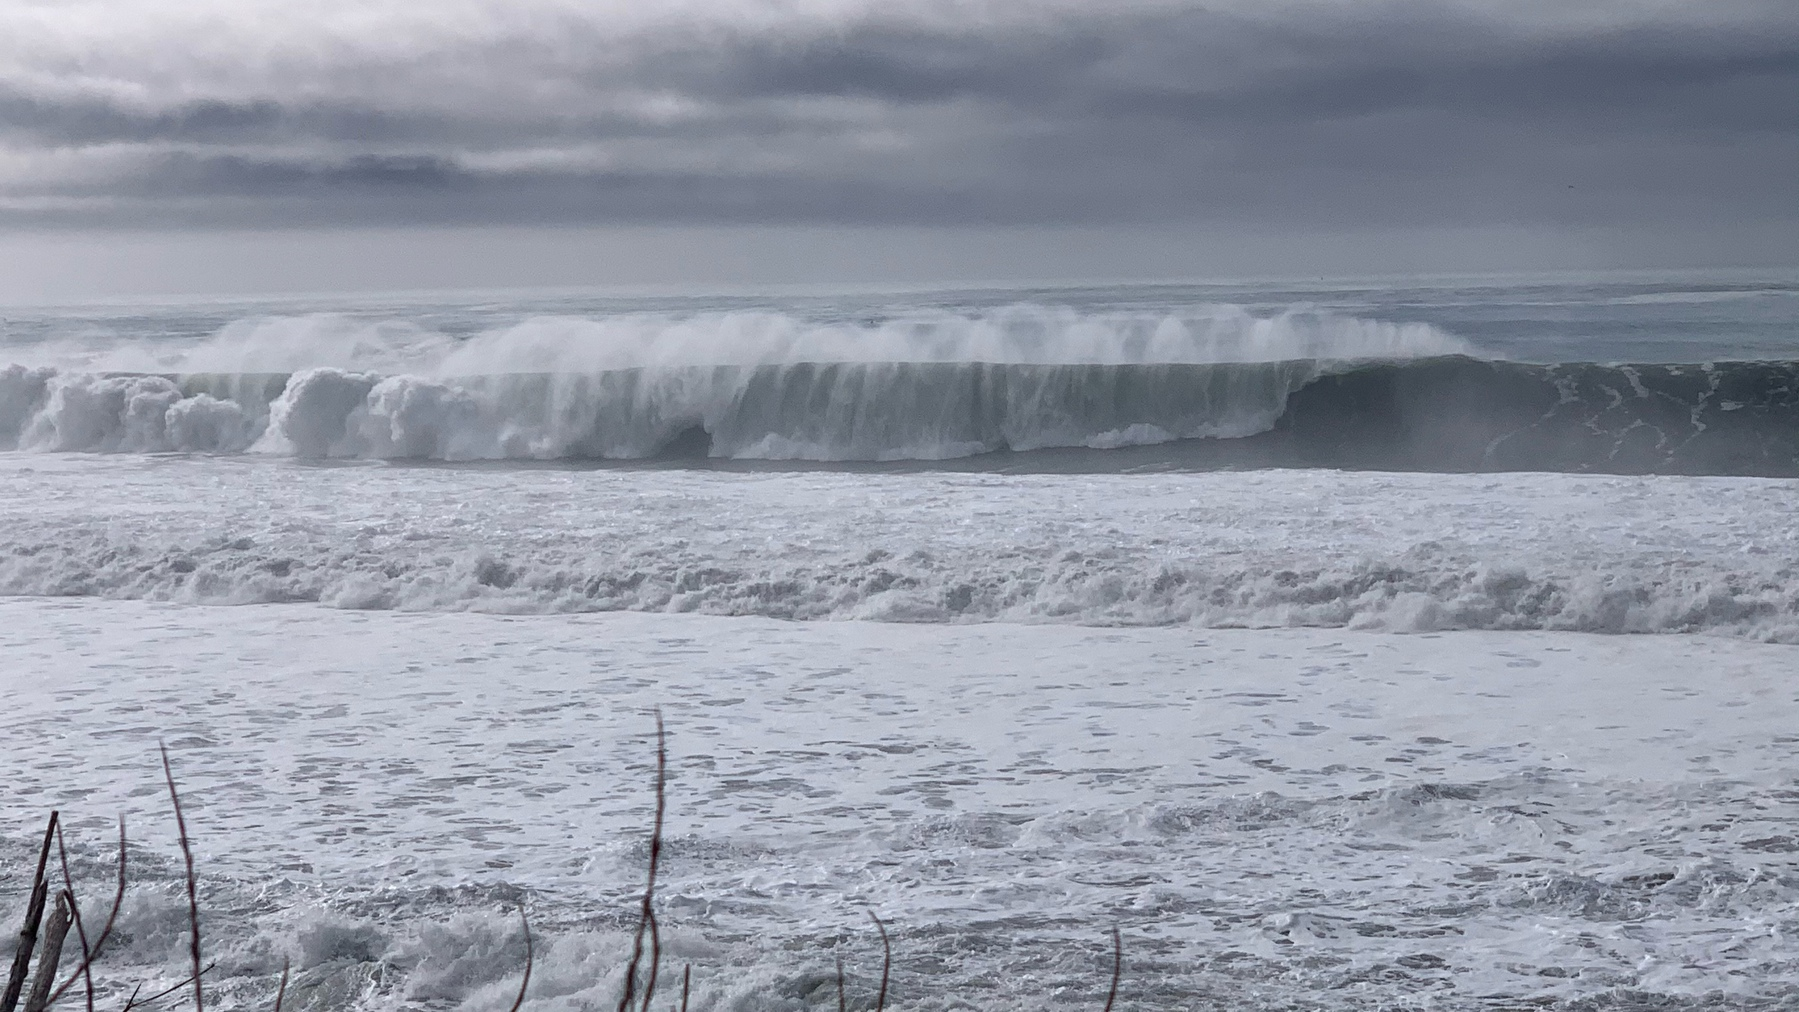 waves crashing, with a ghost wave in front of a cresting wave